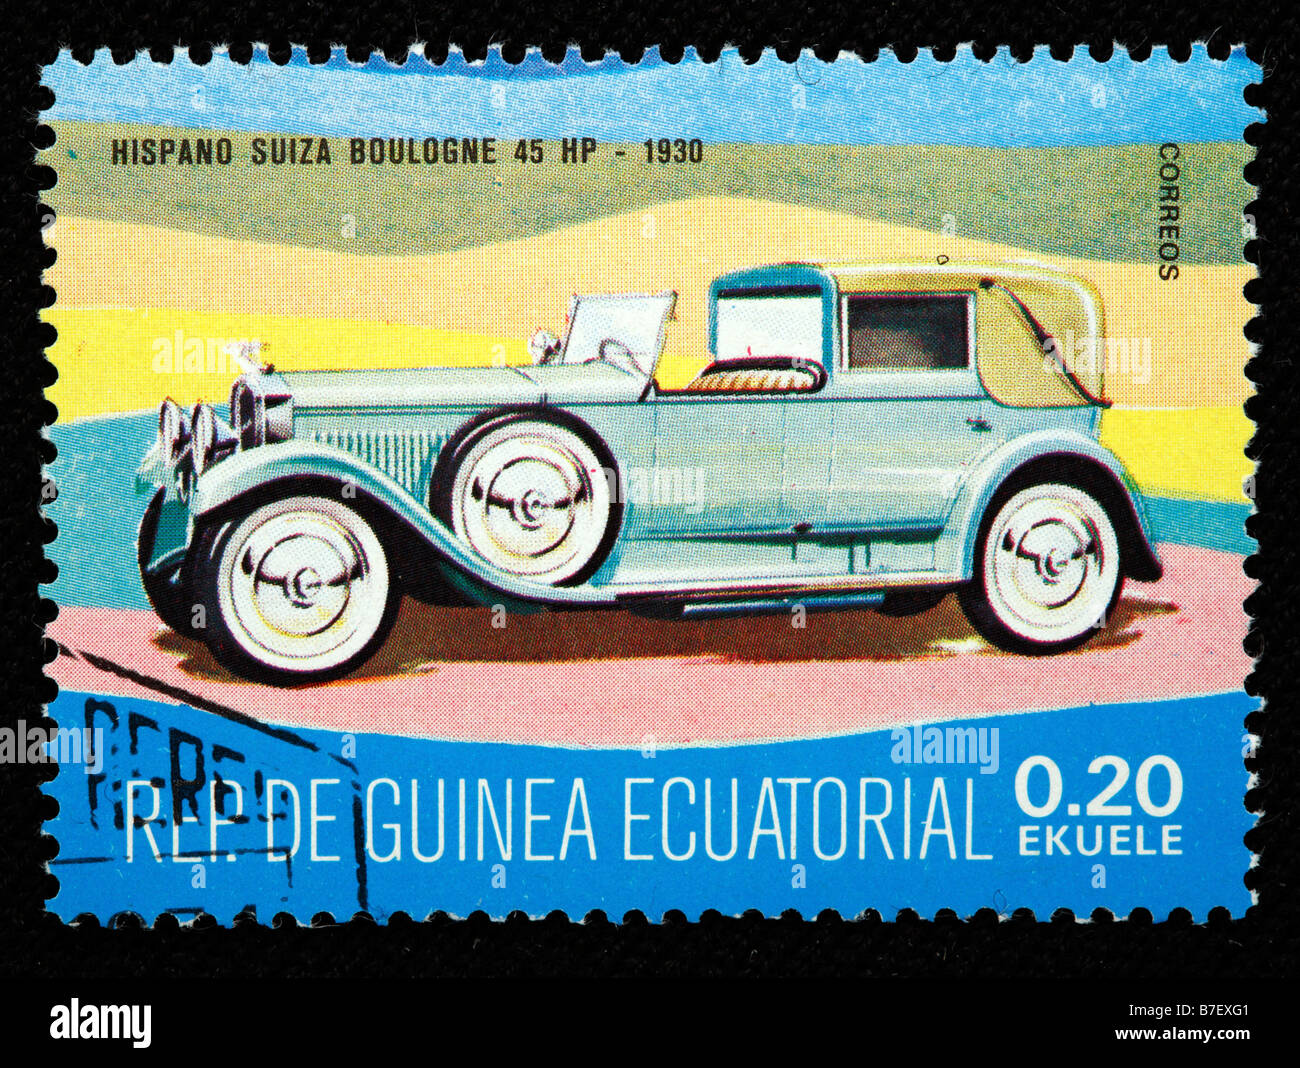 History of transport, car Hispano Suiza Boulogne 45 HP (1930), postage stamp, Equatorial Guinea - Stock Image